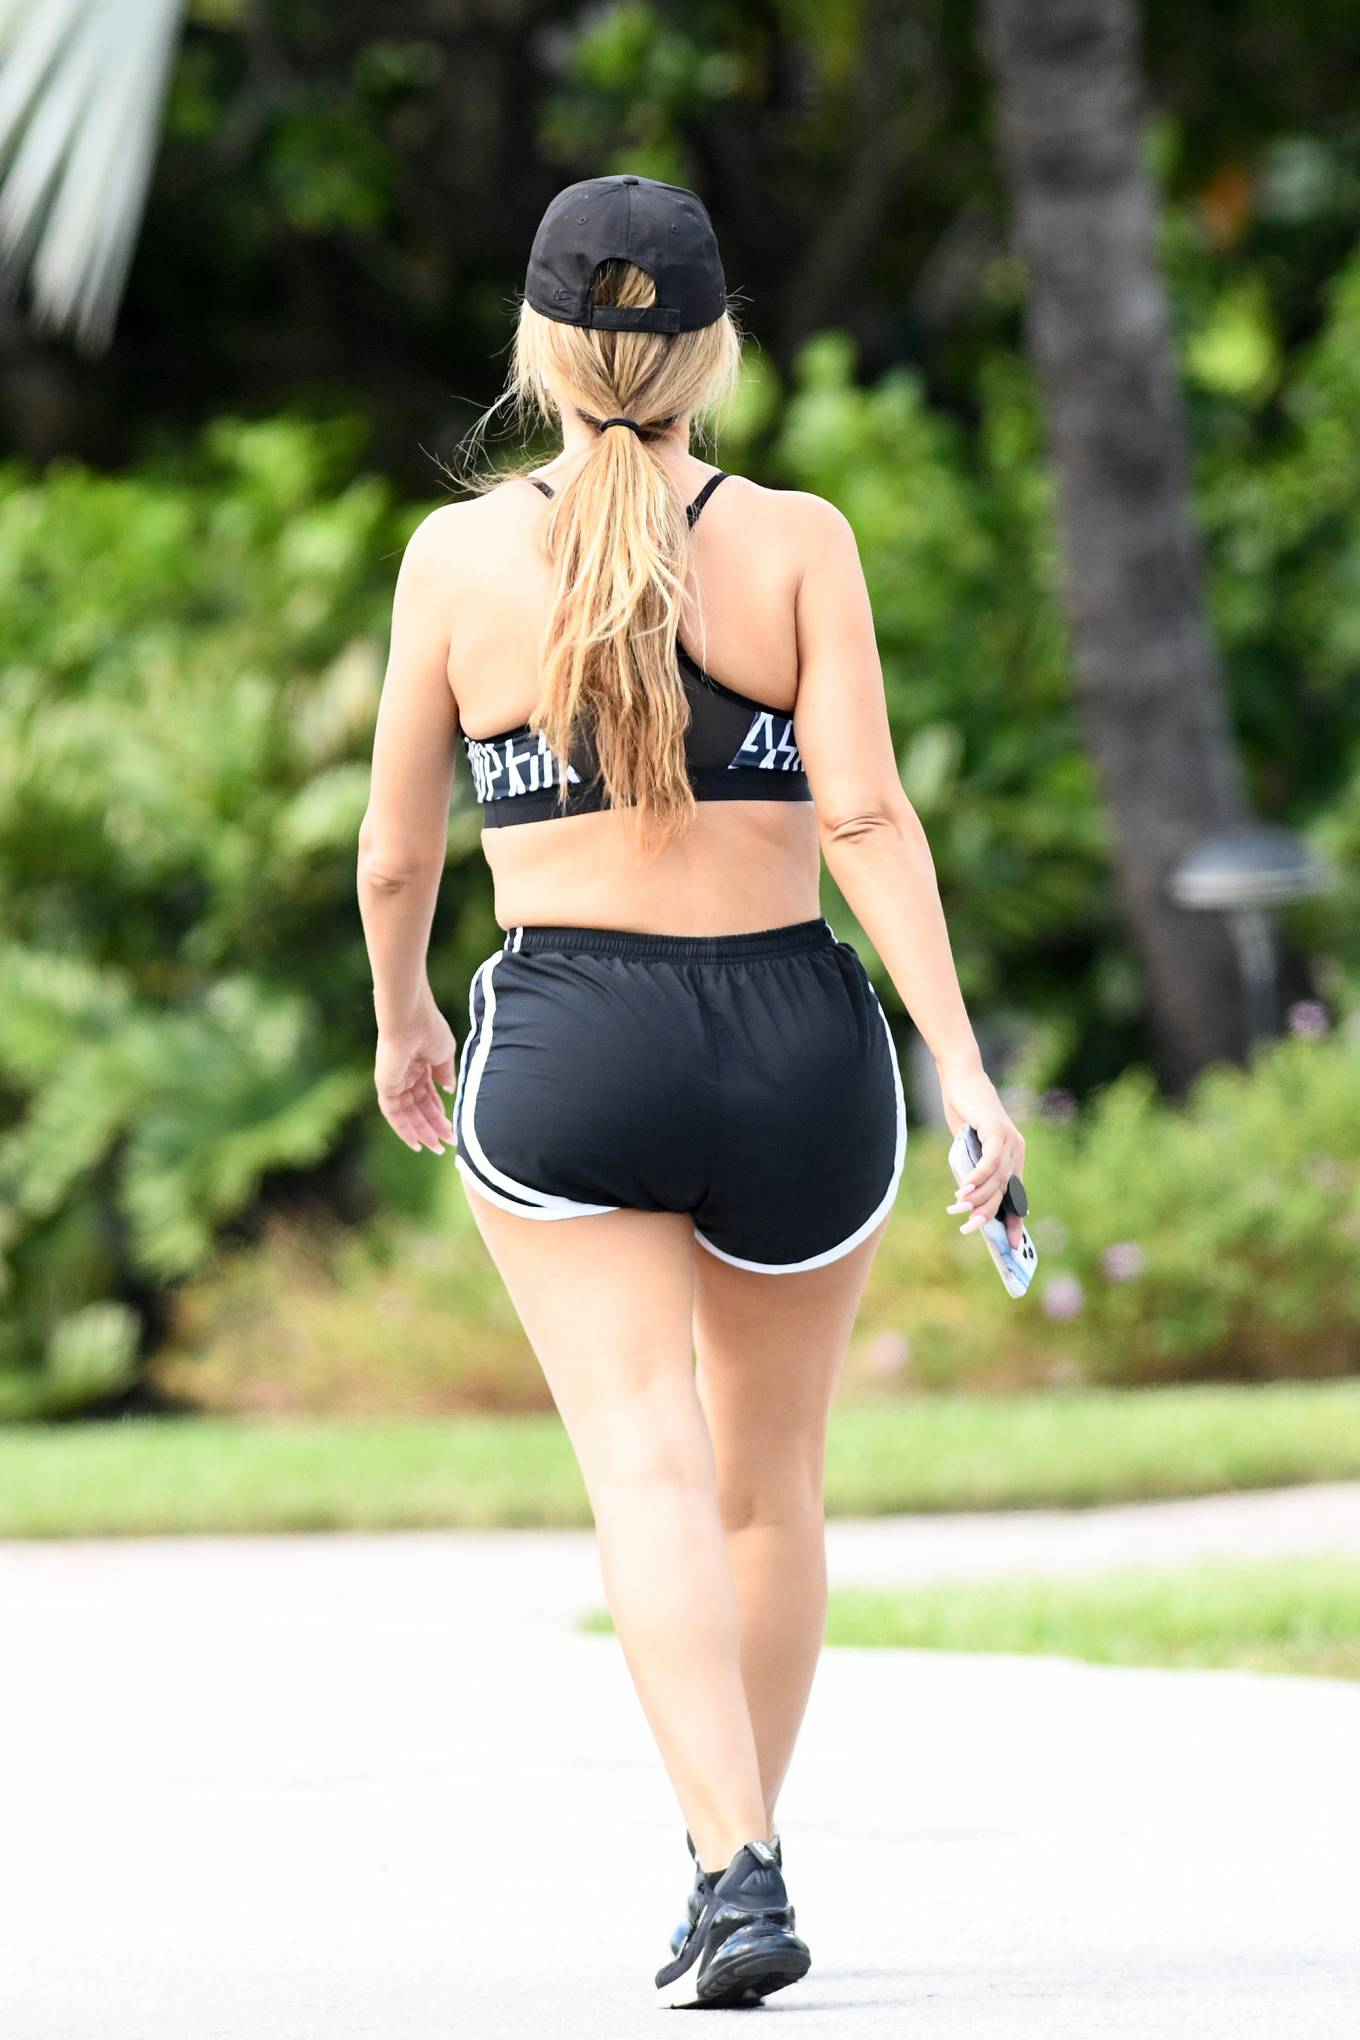 Larsa Pippen 2020 : Larsa Pippen – Recovering from Coronavirus, is seen taking a walk around her neighborhood-20